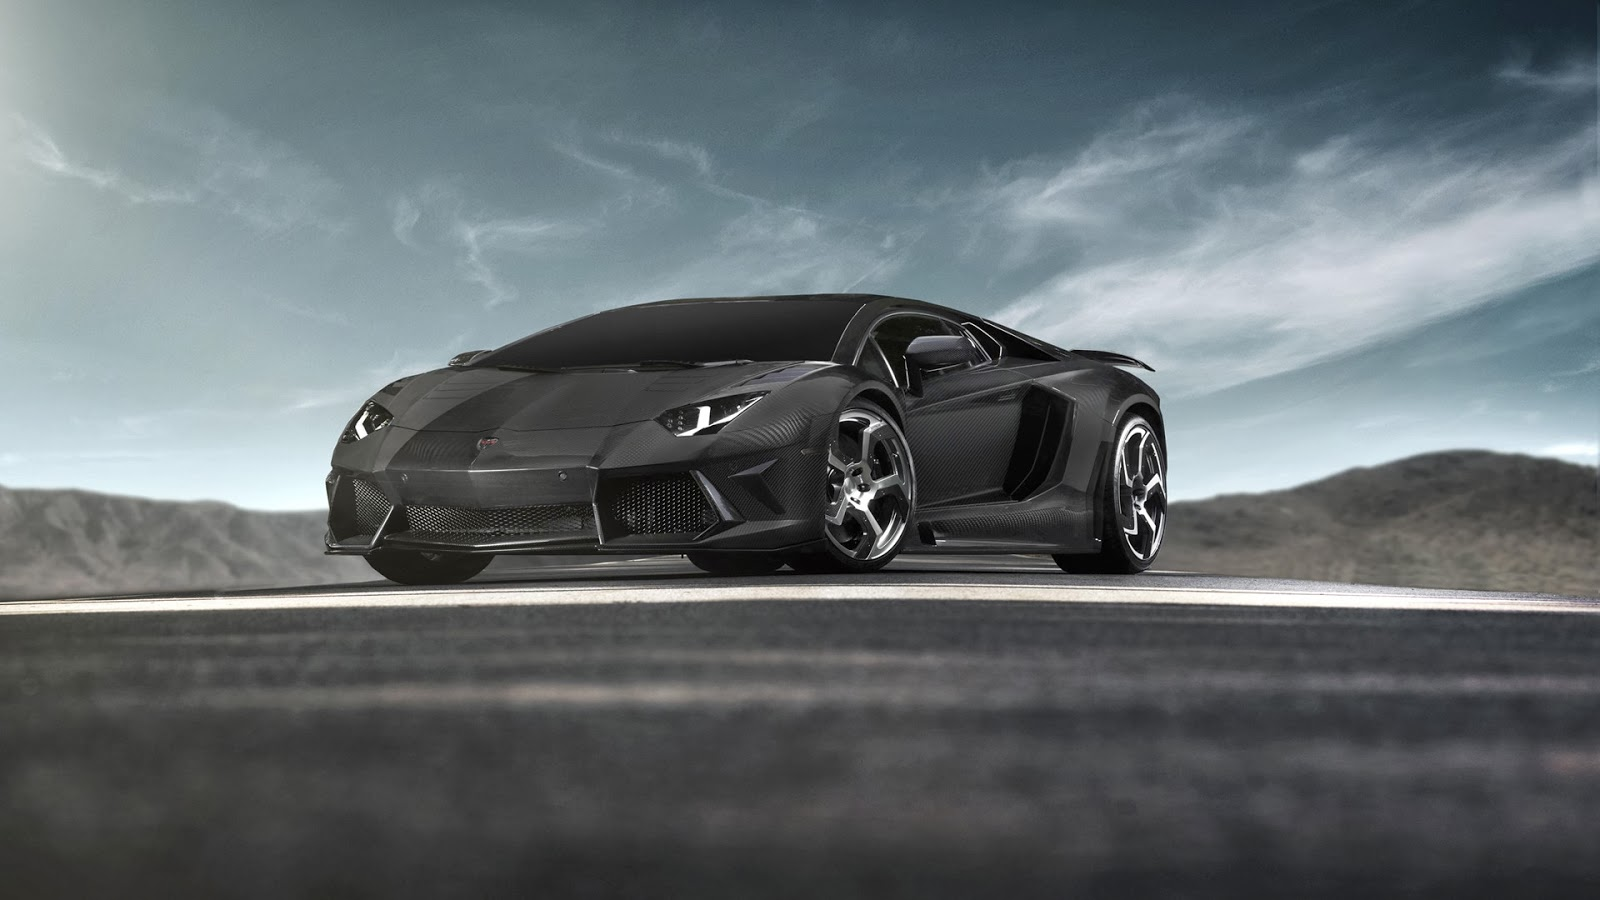 Lamborghini Beautiful Car Wide Wallpapers Cars Wallpaper 1600x900